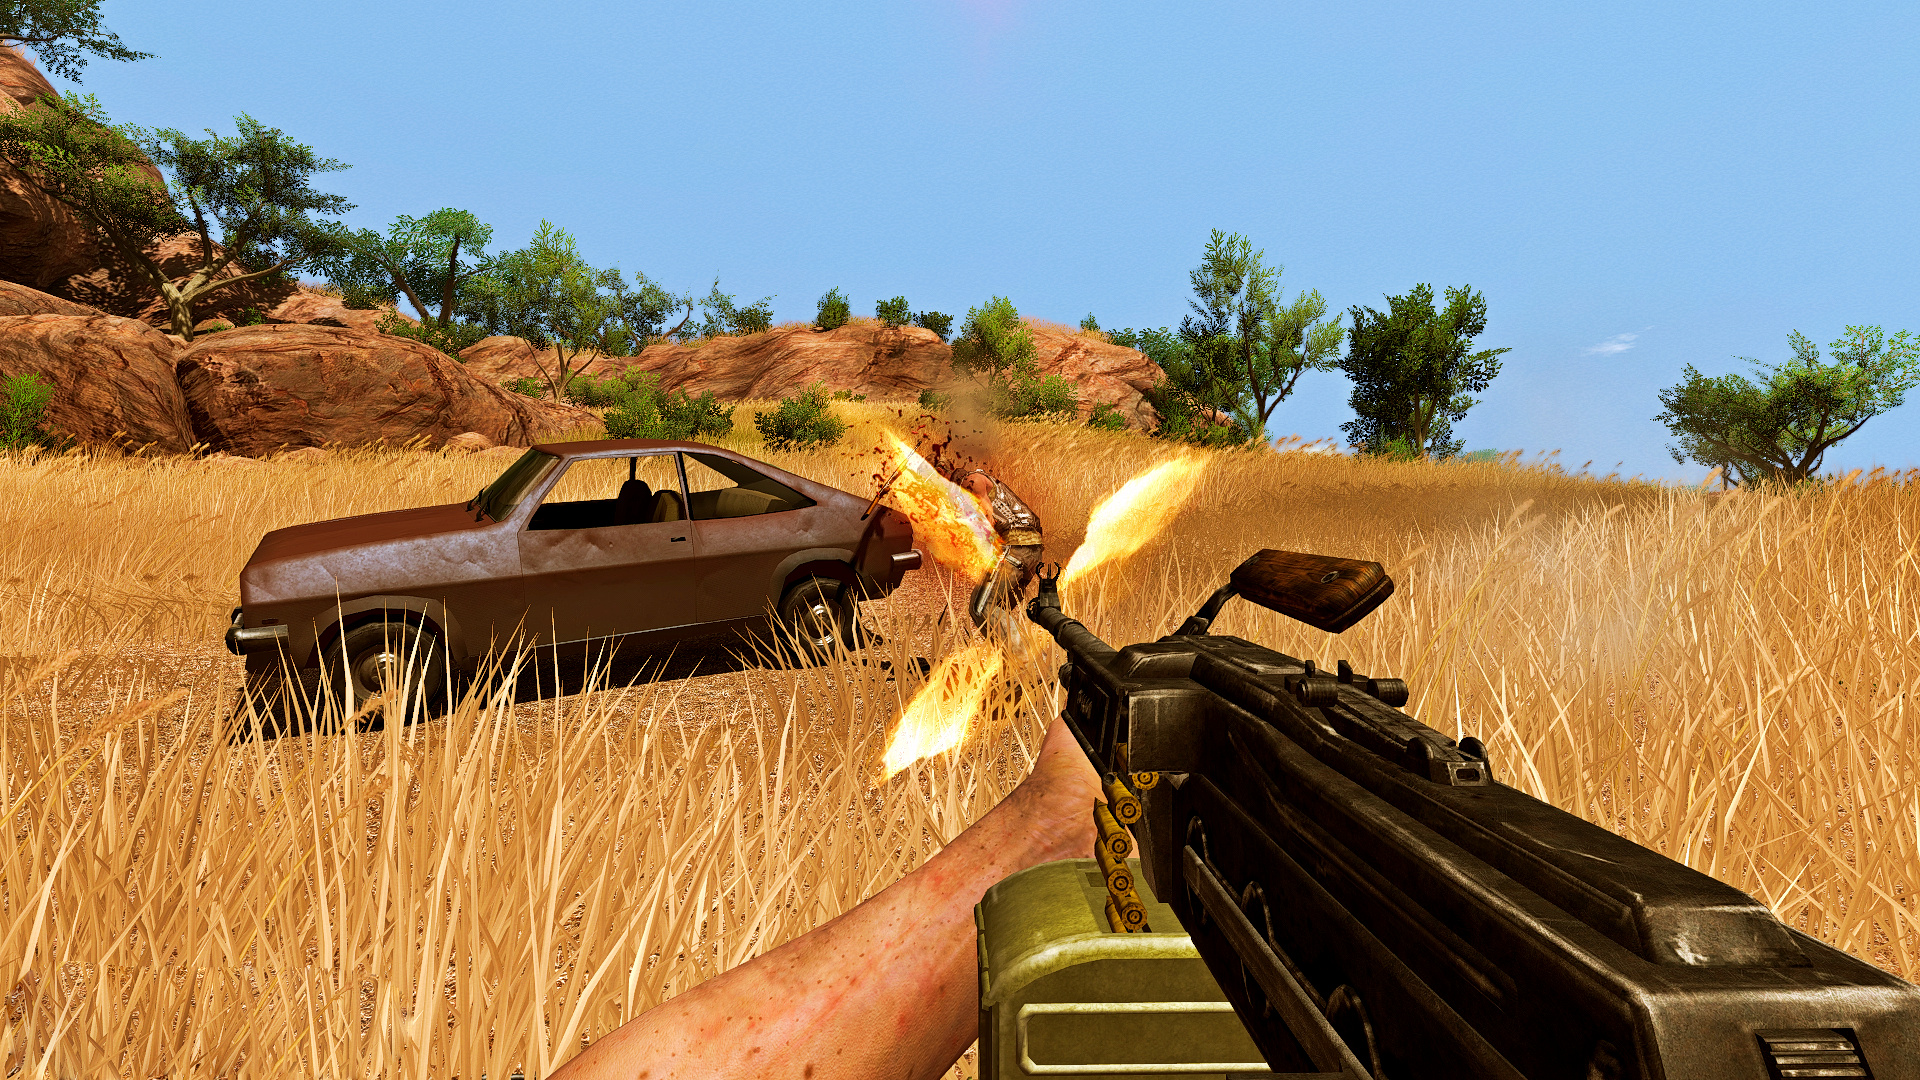 farcry2 2018-02-12 19-55-15-388.jpg - Far Cry 2